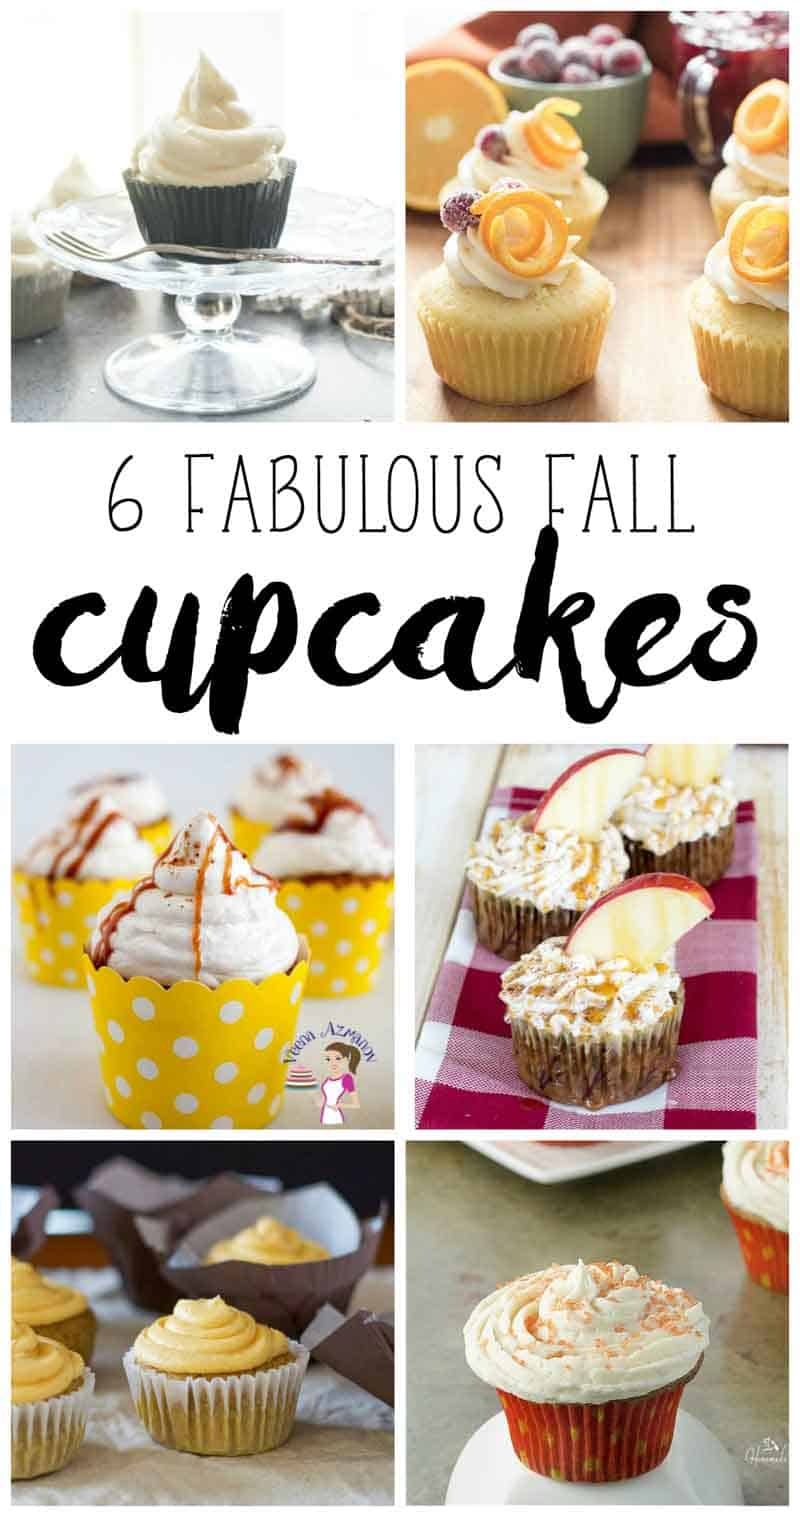 A social media optimized image for six fabulous fall inspired cupcakes with these pumpkin spiced apple cupcakes.